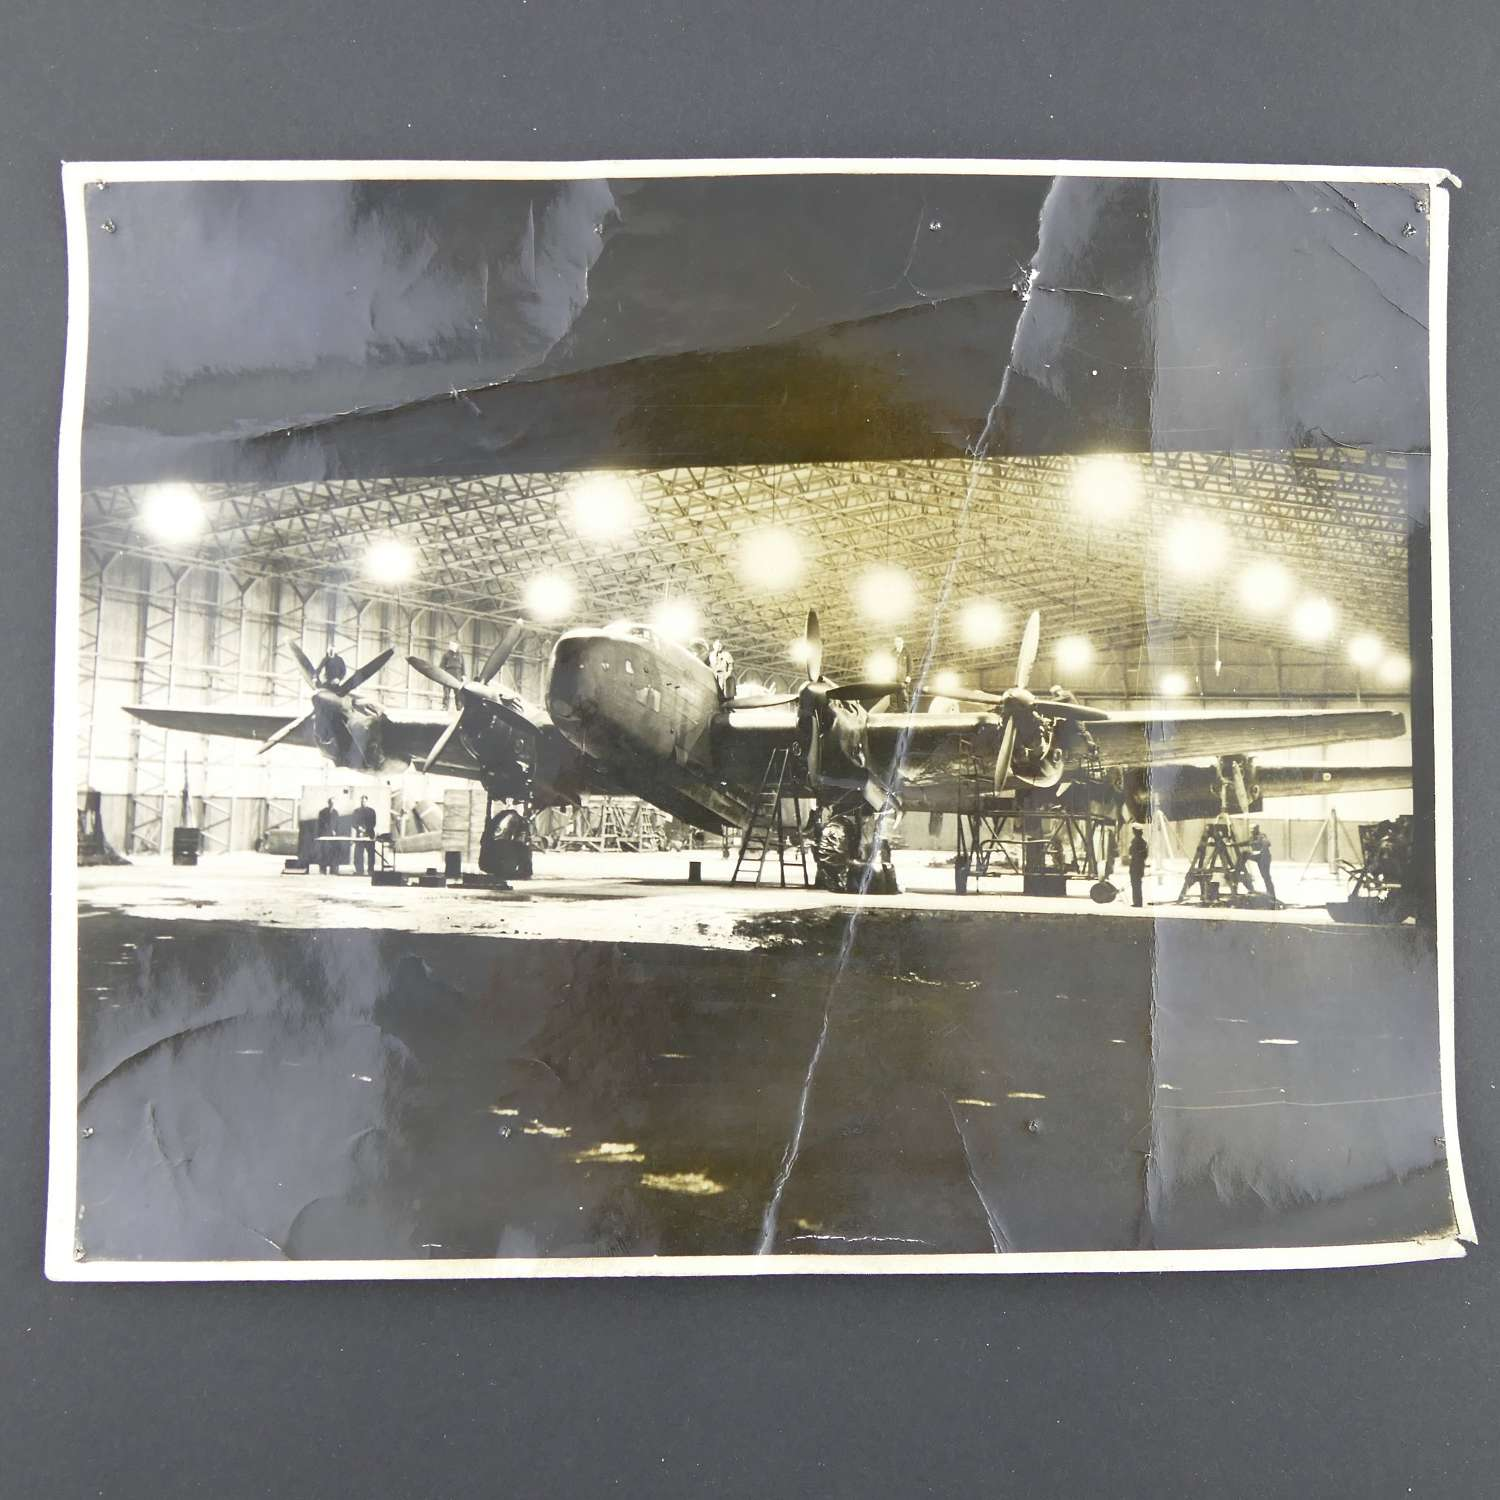 Air Ministry Photograph - Servicing RAF bombers at night